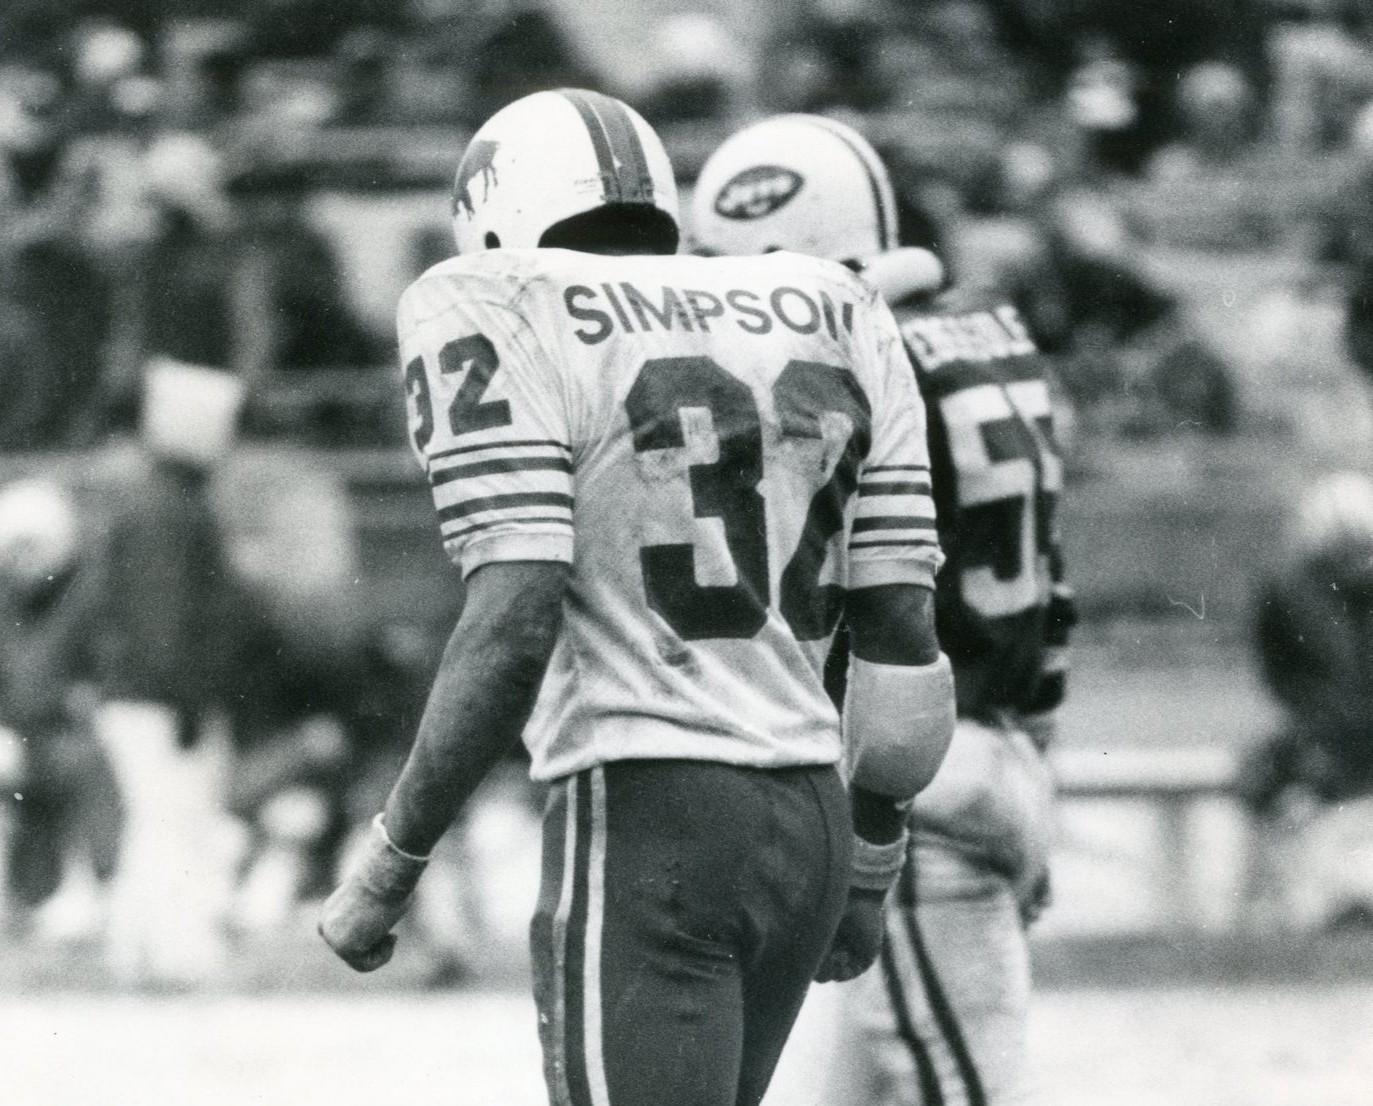 O.J. Simpson's No. 32 has not been worn since he played. (Buffalo News file photo)